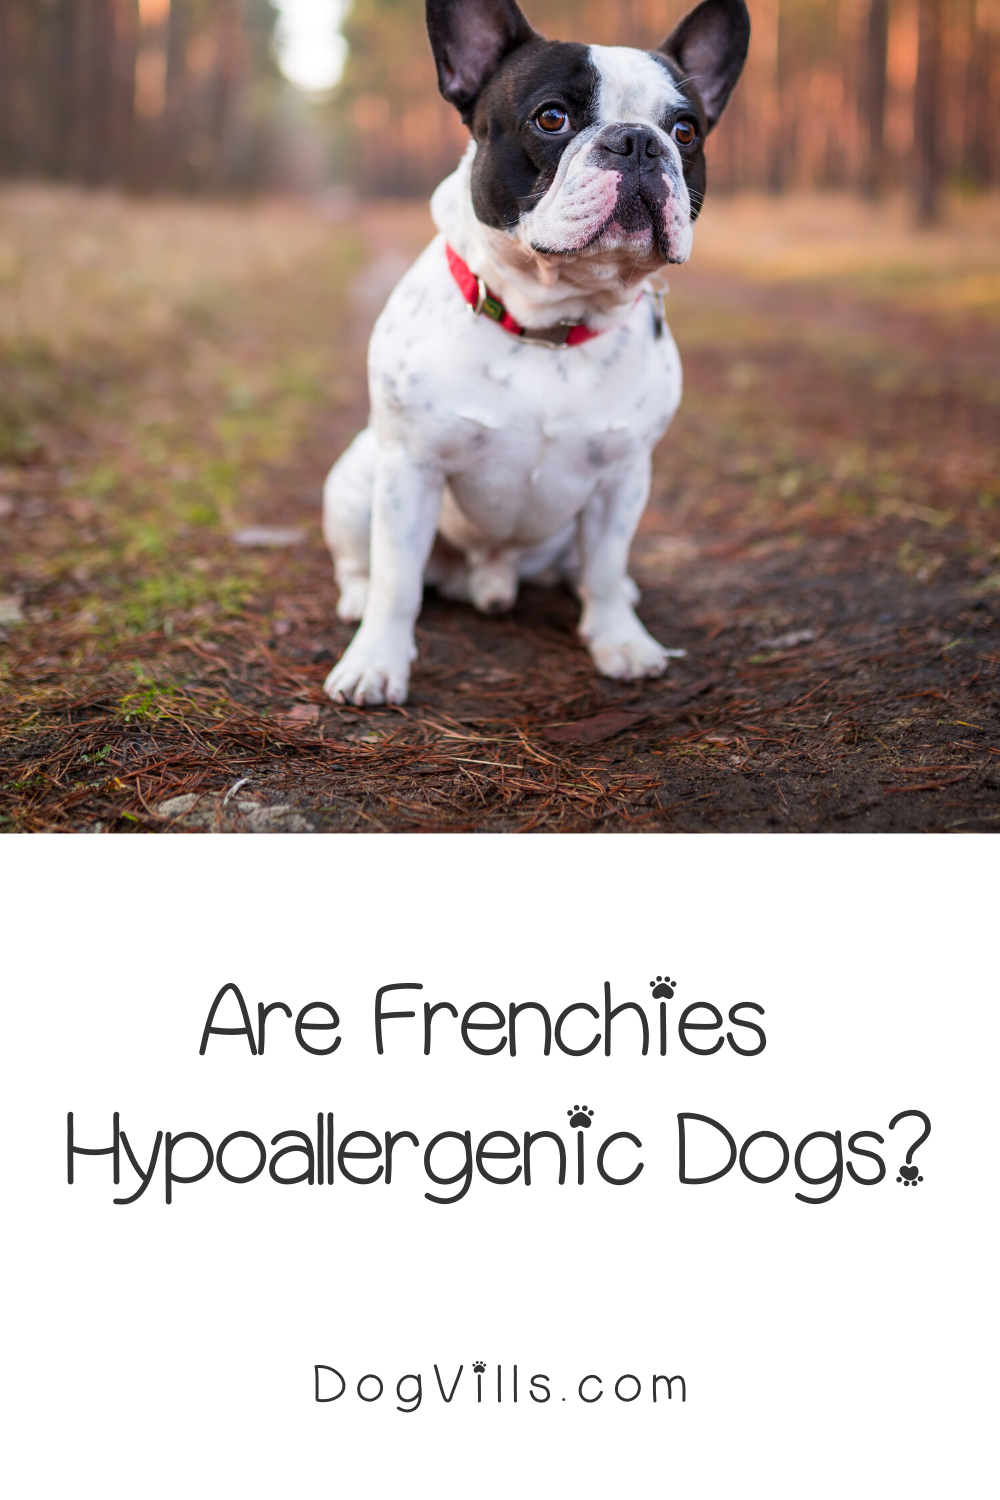 Are French Bulldogs Hypoallergenic Dogs? DogVills in